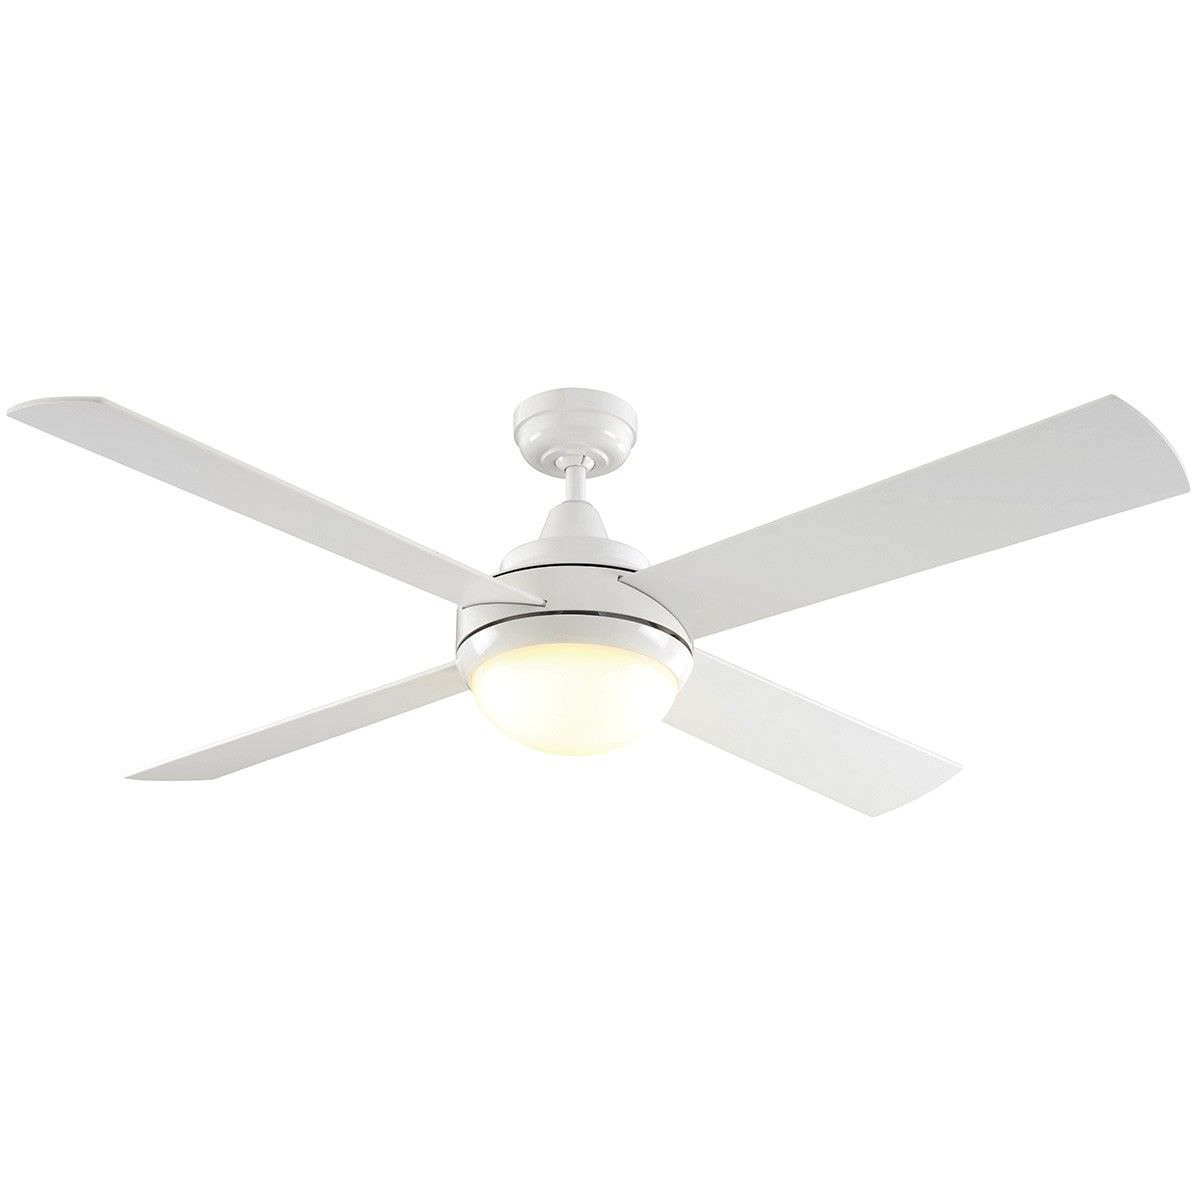 Caprice Timber Dc Ceiling Fan With Led Light 130cm 52 White